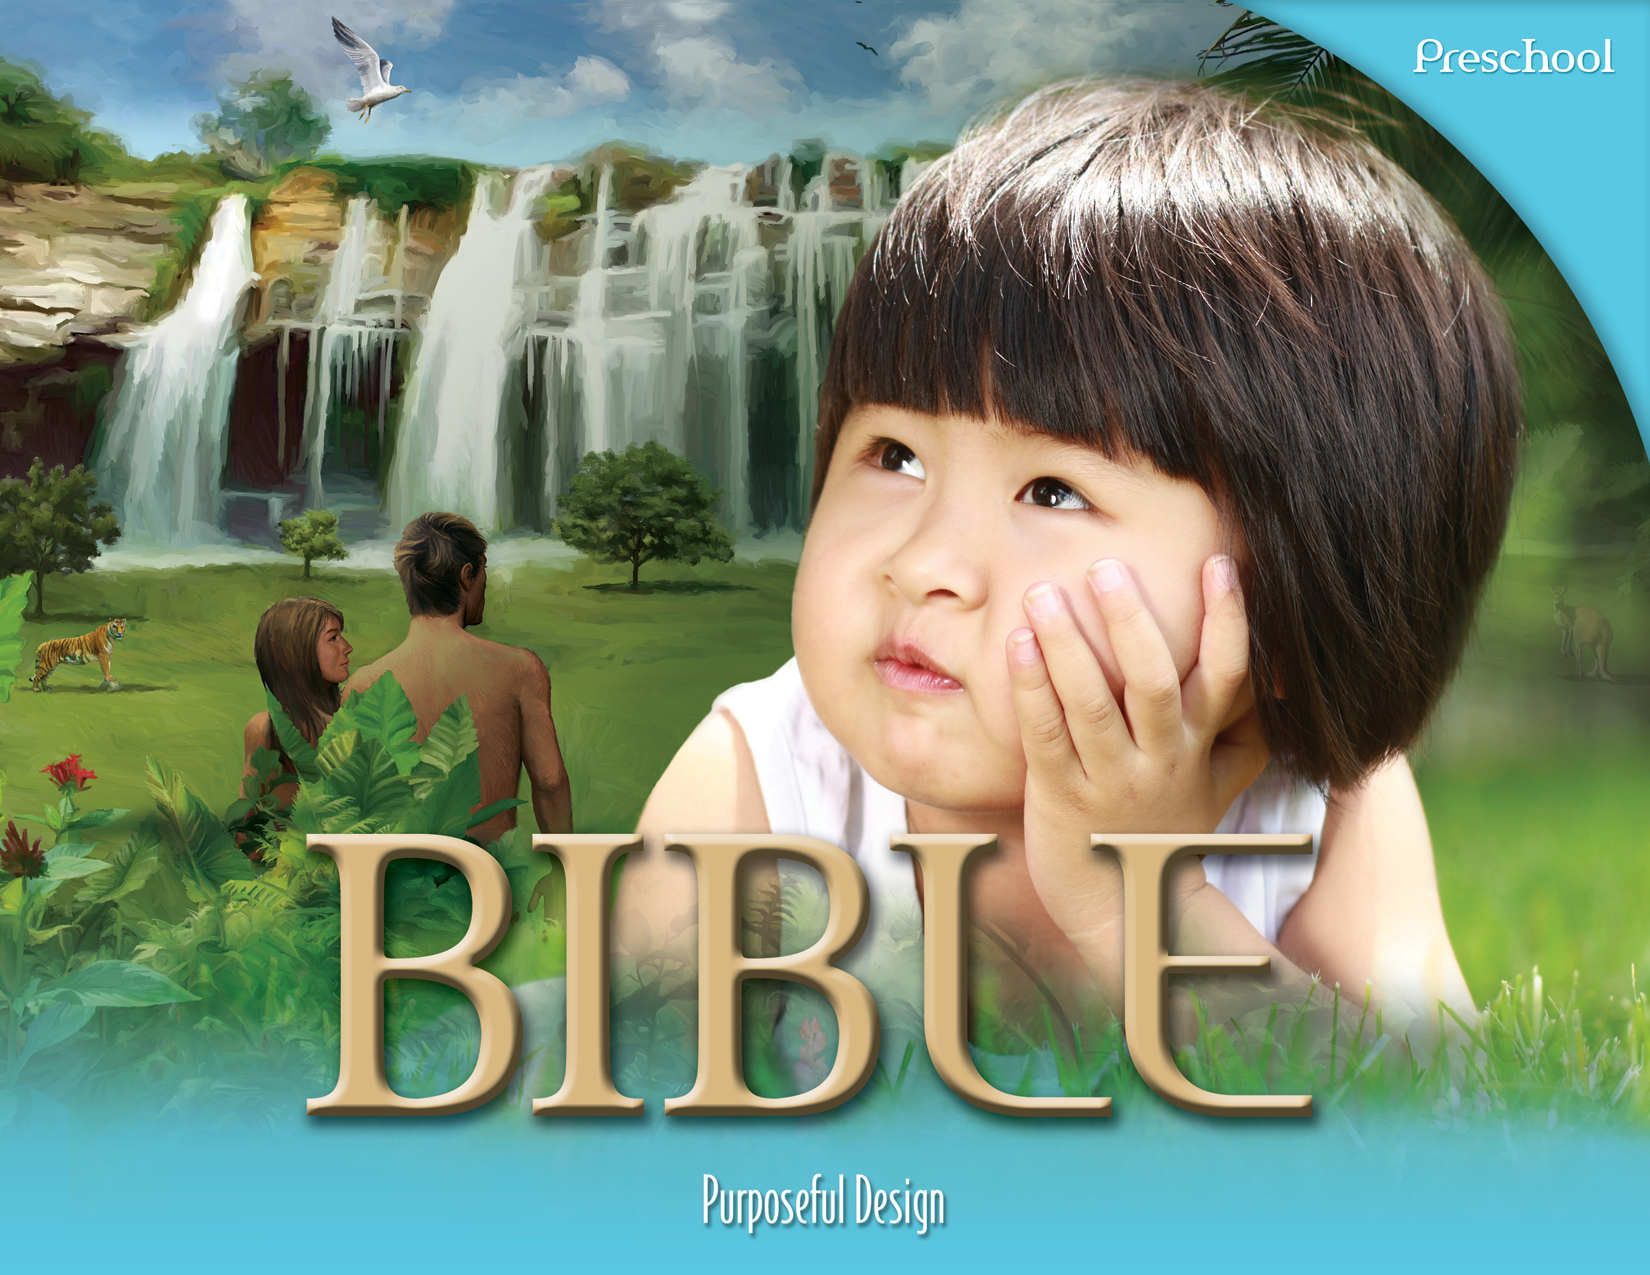 This textbook series will be a catalyst for a lifelong relationship with Jesus. It is straightforward and relevant, powerful enough to change a child's heart. The teacher edition includes full-color visual aids, and CDs with BLMs and music.